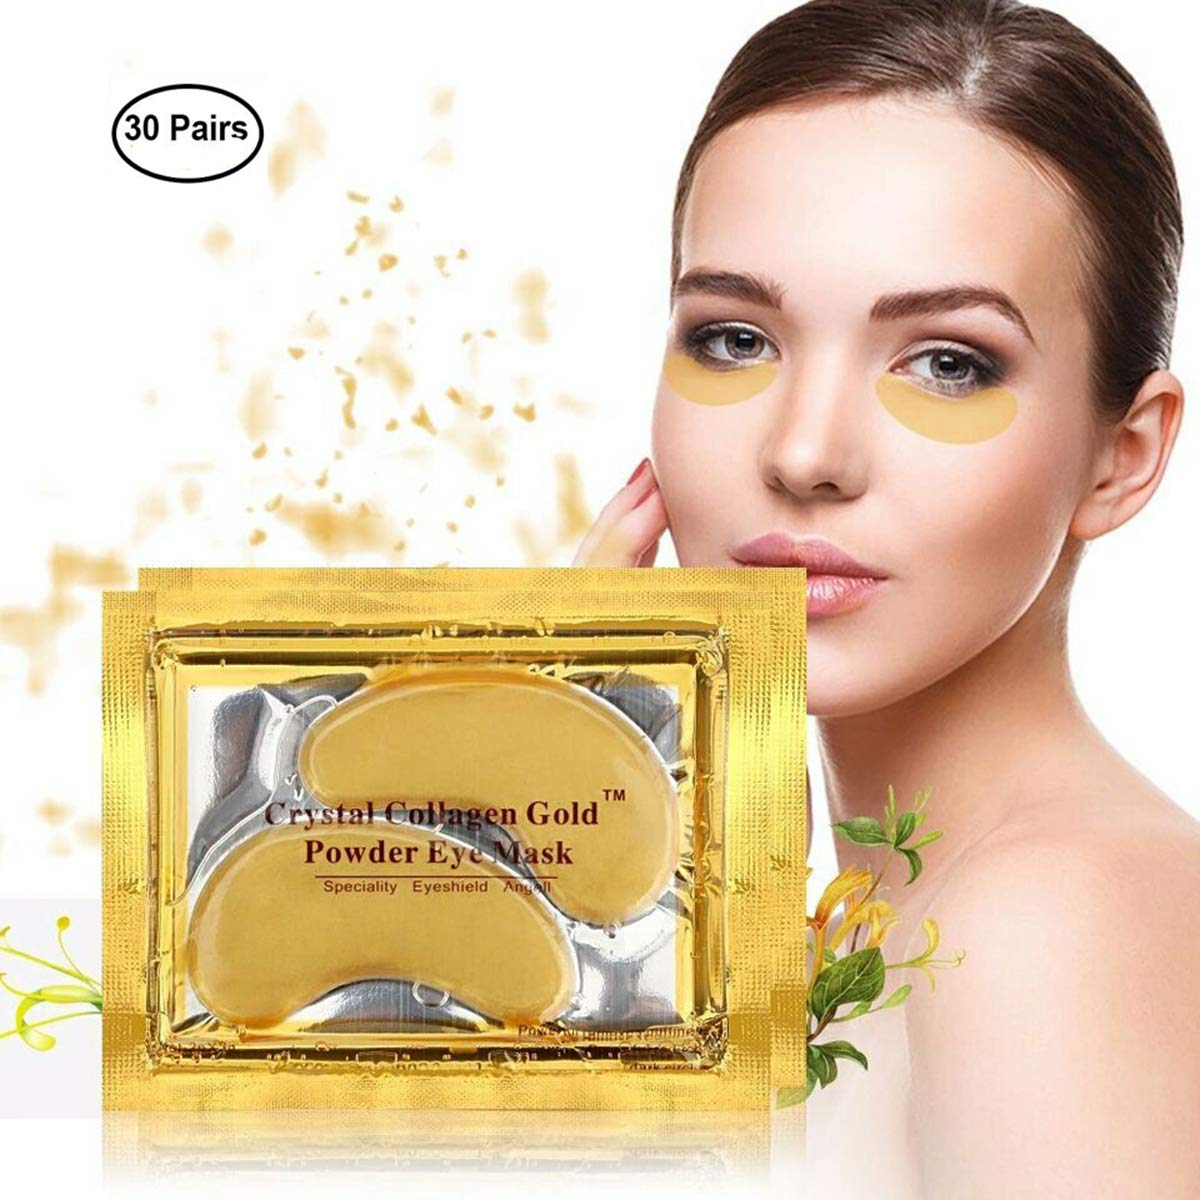 24k Gold Eye Pads-30 Pairs Collagen Eye Mask Powder Crystal Gel For Anti-Aging & Moisturizing Reducing Dark Circles, Puffiness, Wrinkles by INSANY by FADANY